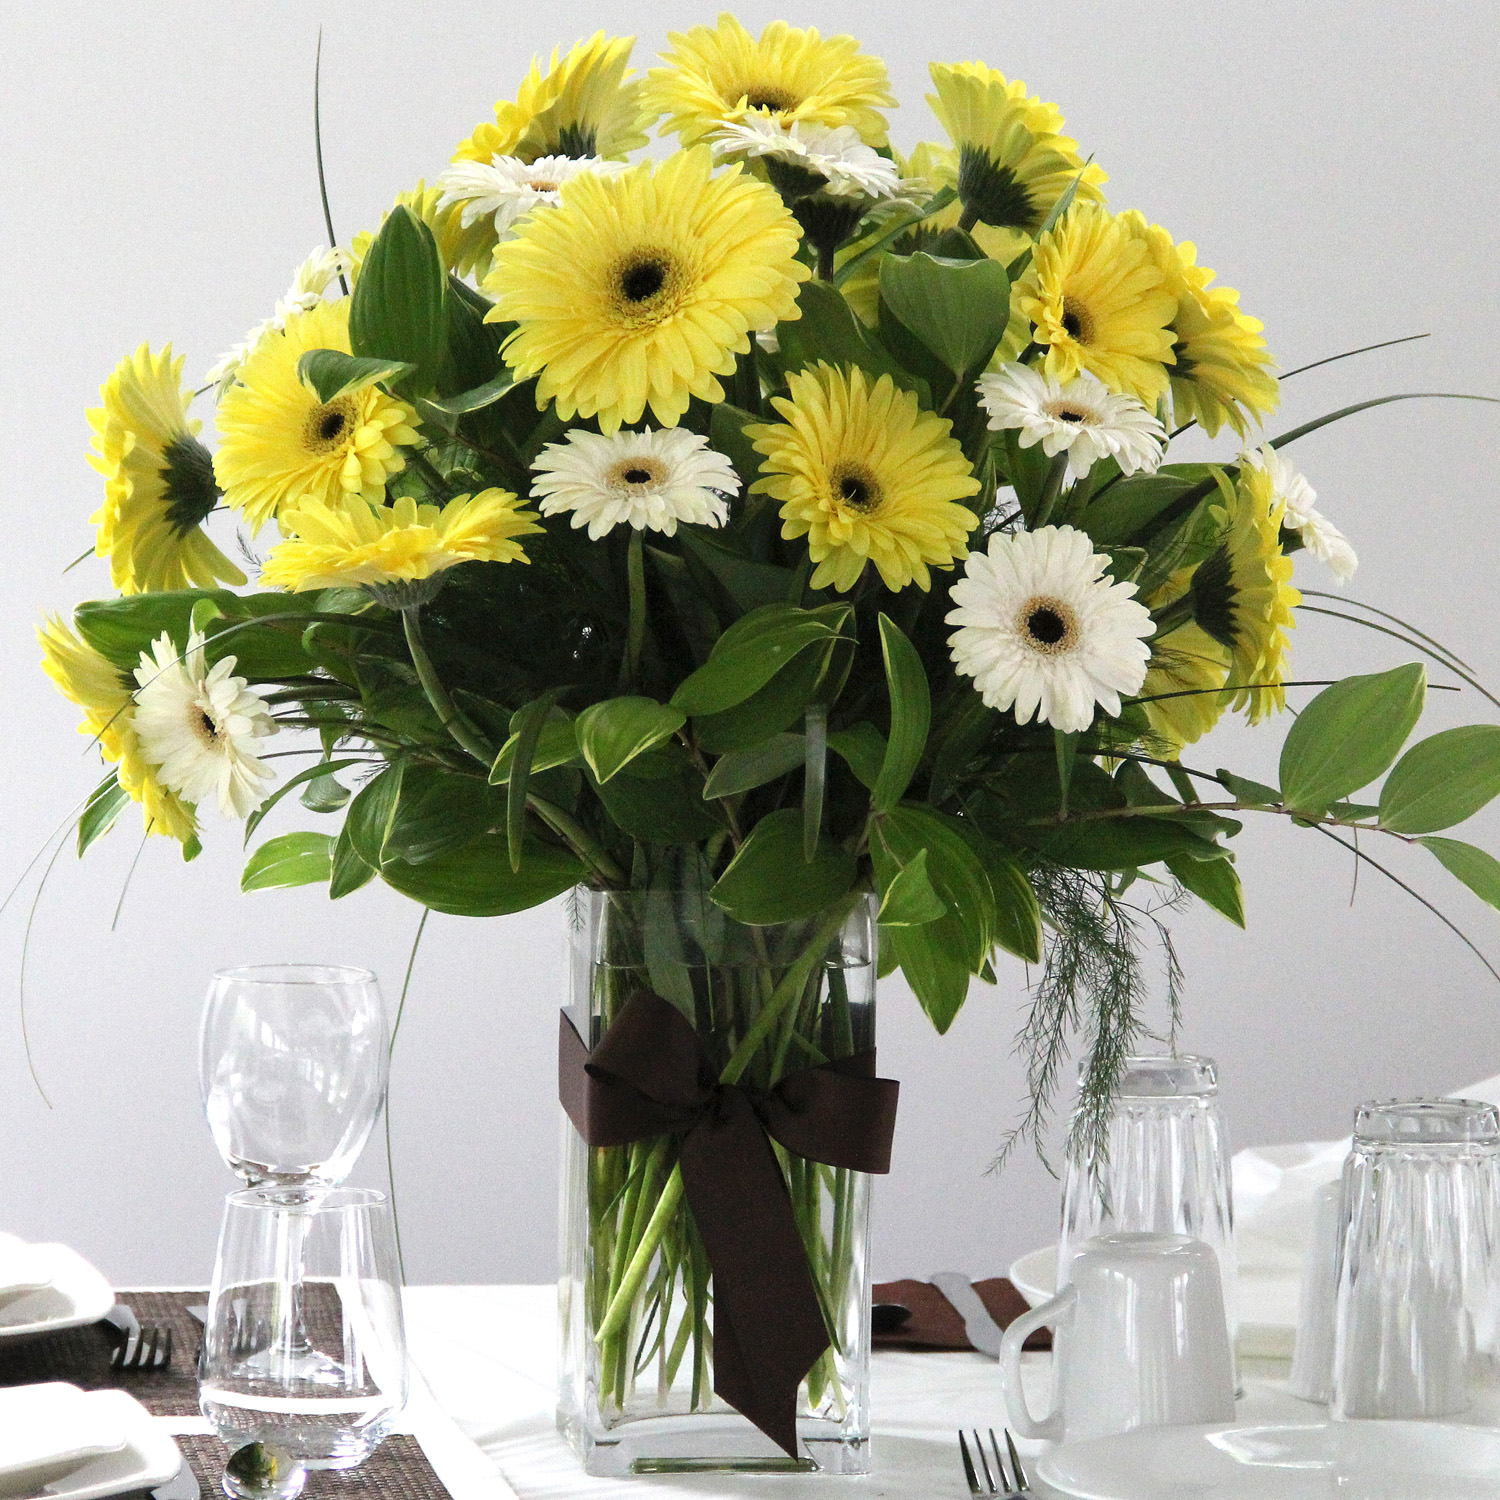 Amish Wedding Flowers 6-Middlefield Ohio-Flowers by Emily.JPG